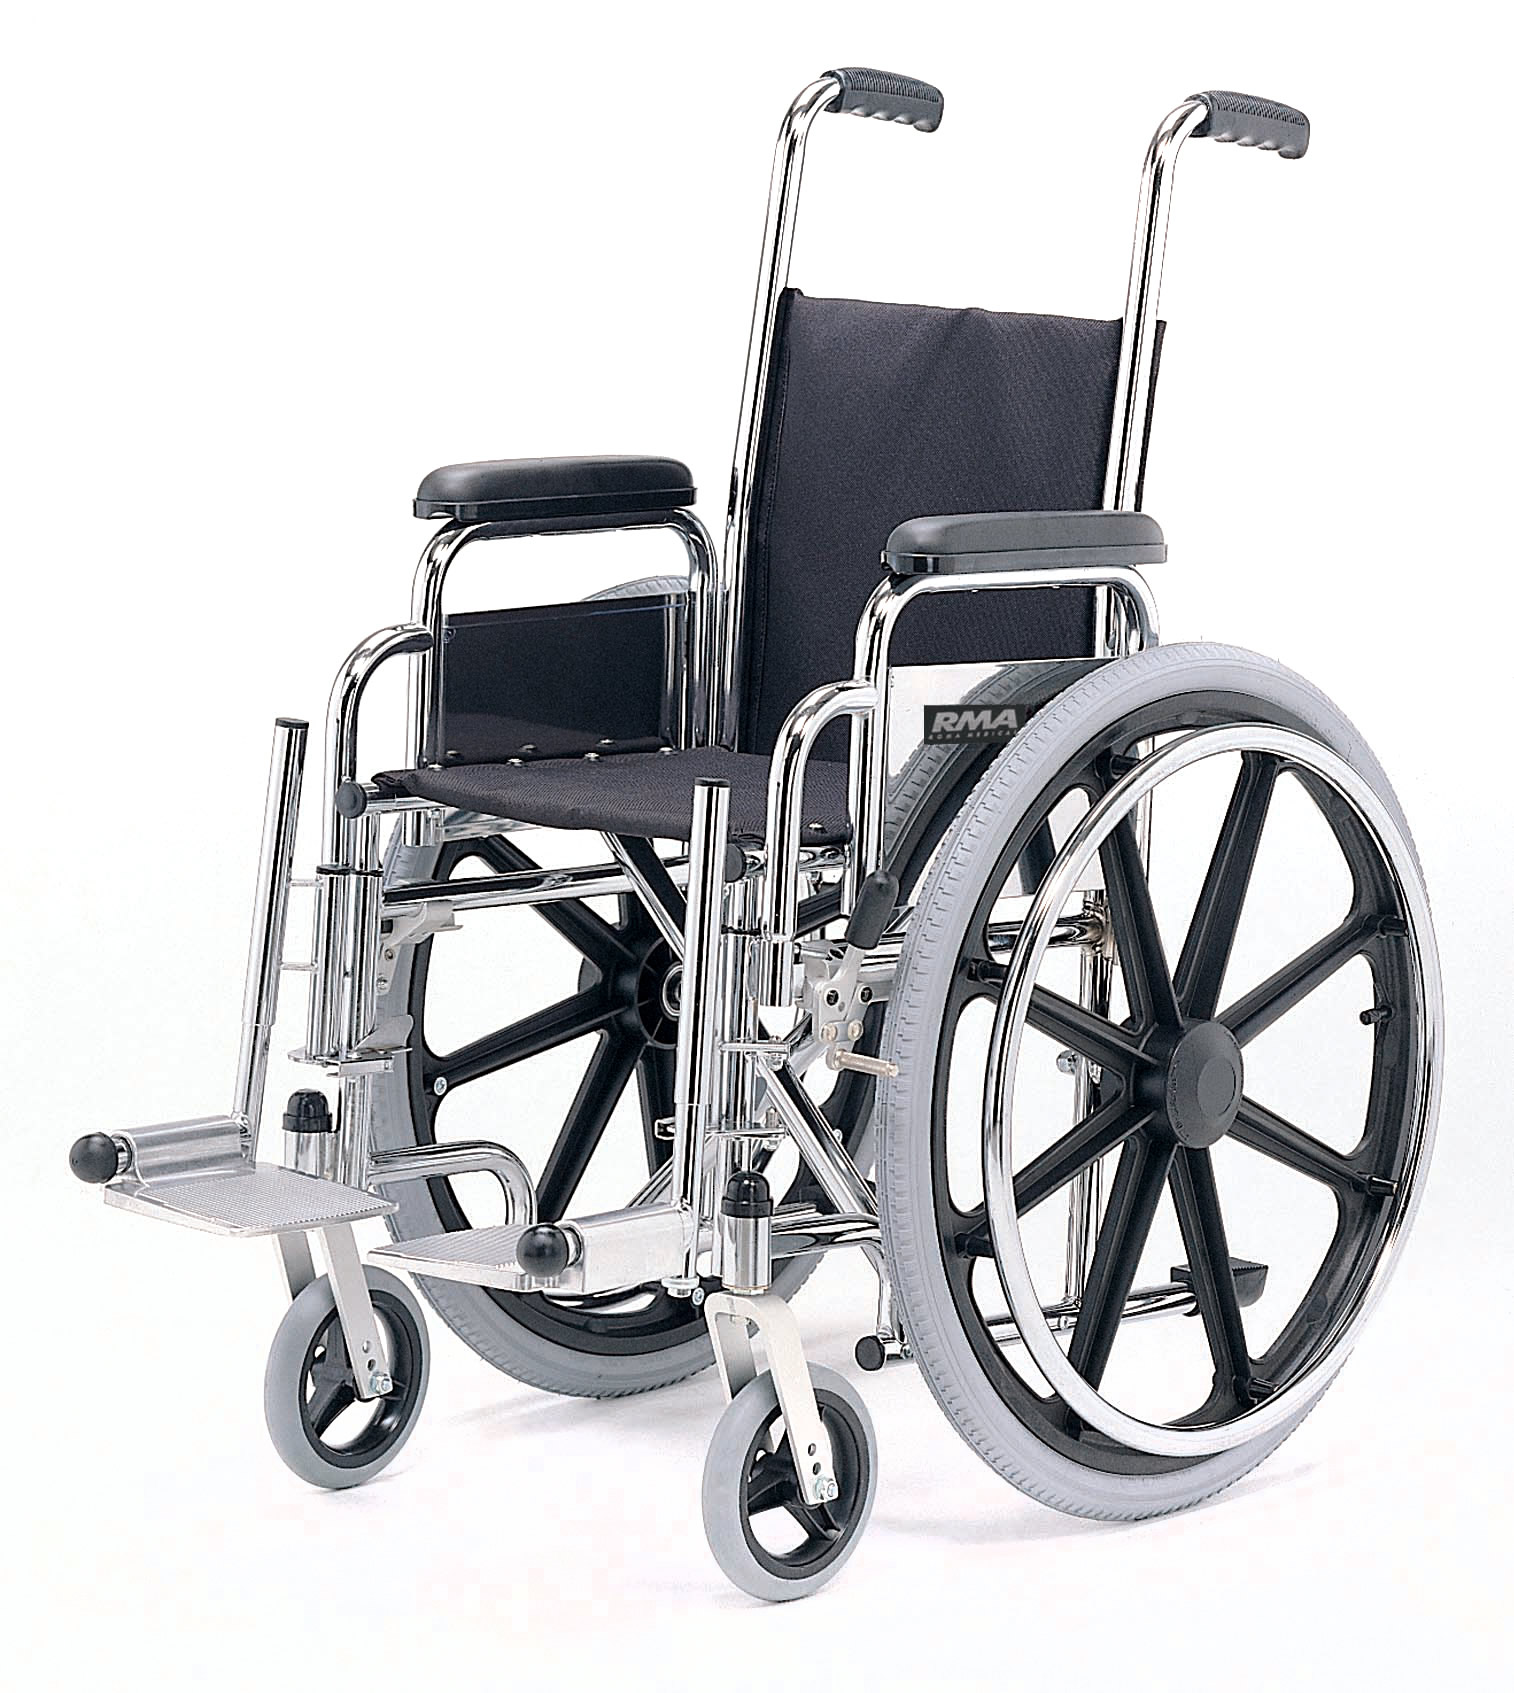 Roma Medical 1451 Childrens Wheelchair free delivery UK Wheelchairs